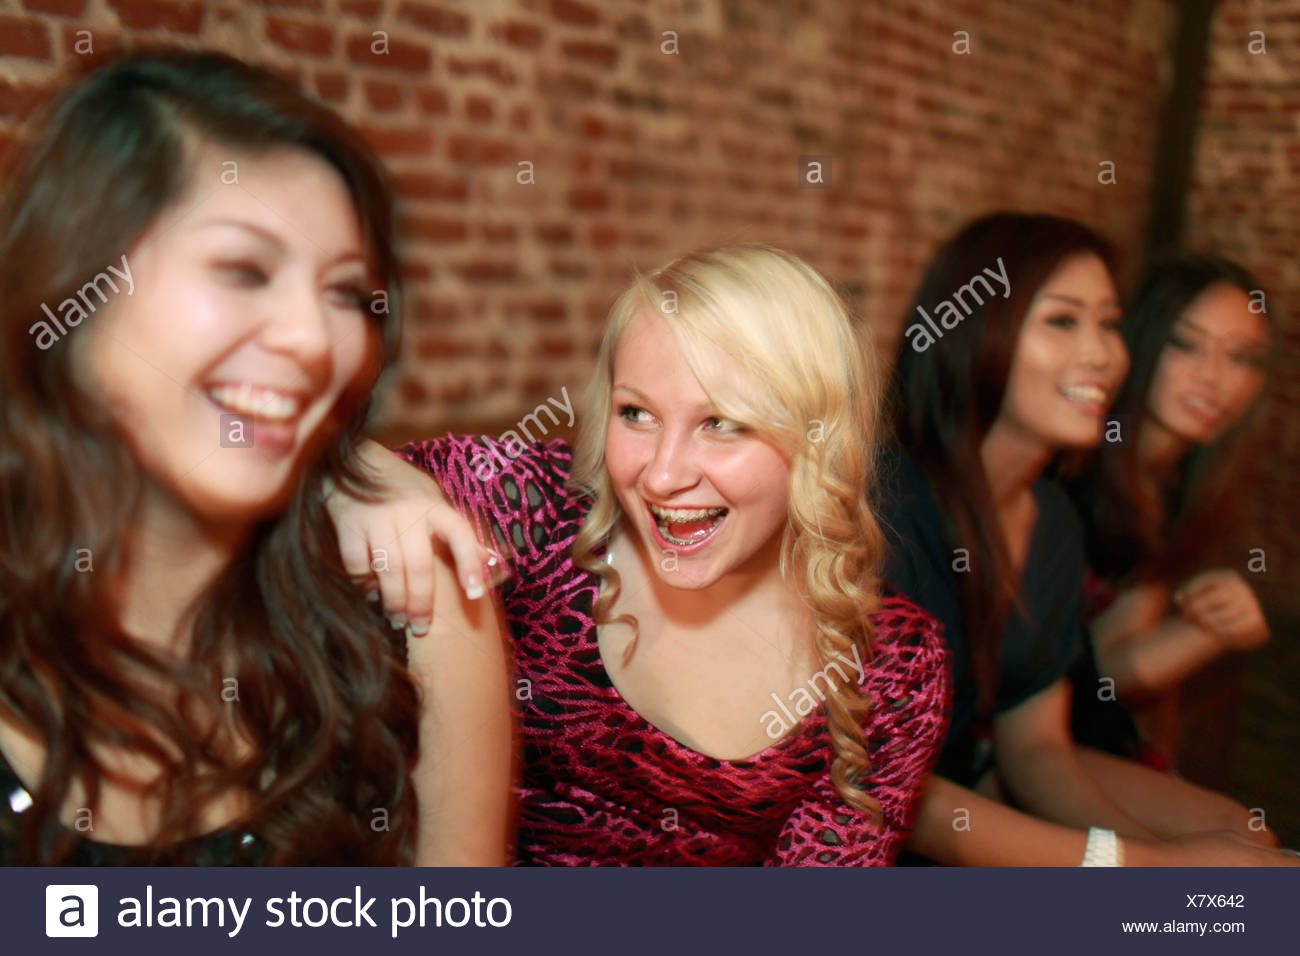 Teenage girls at a birthday party - Stock Image